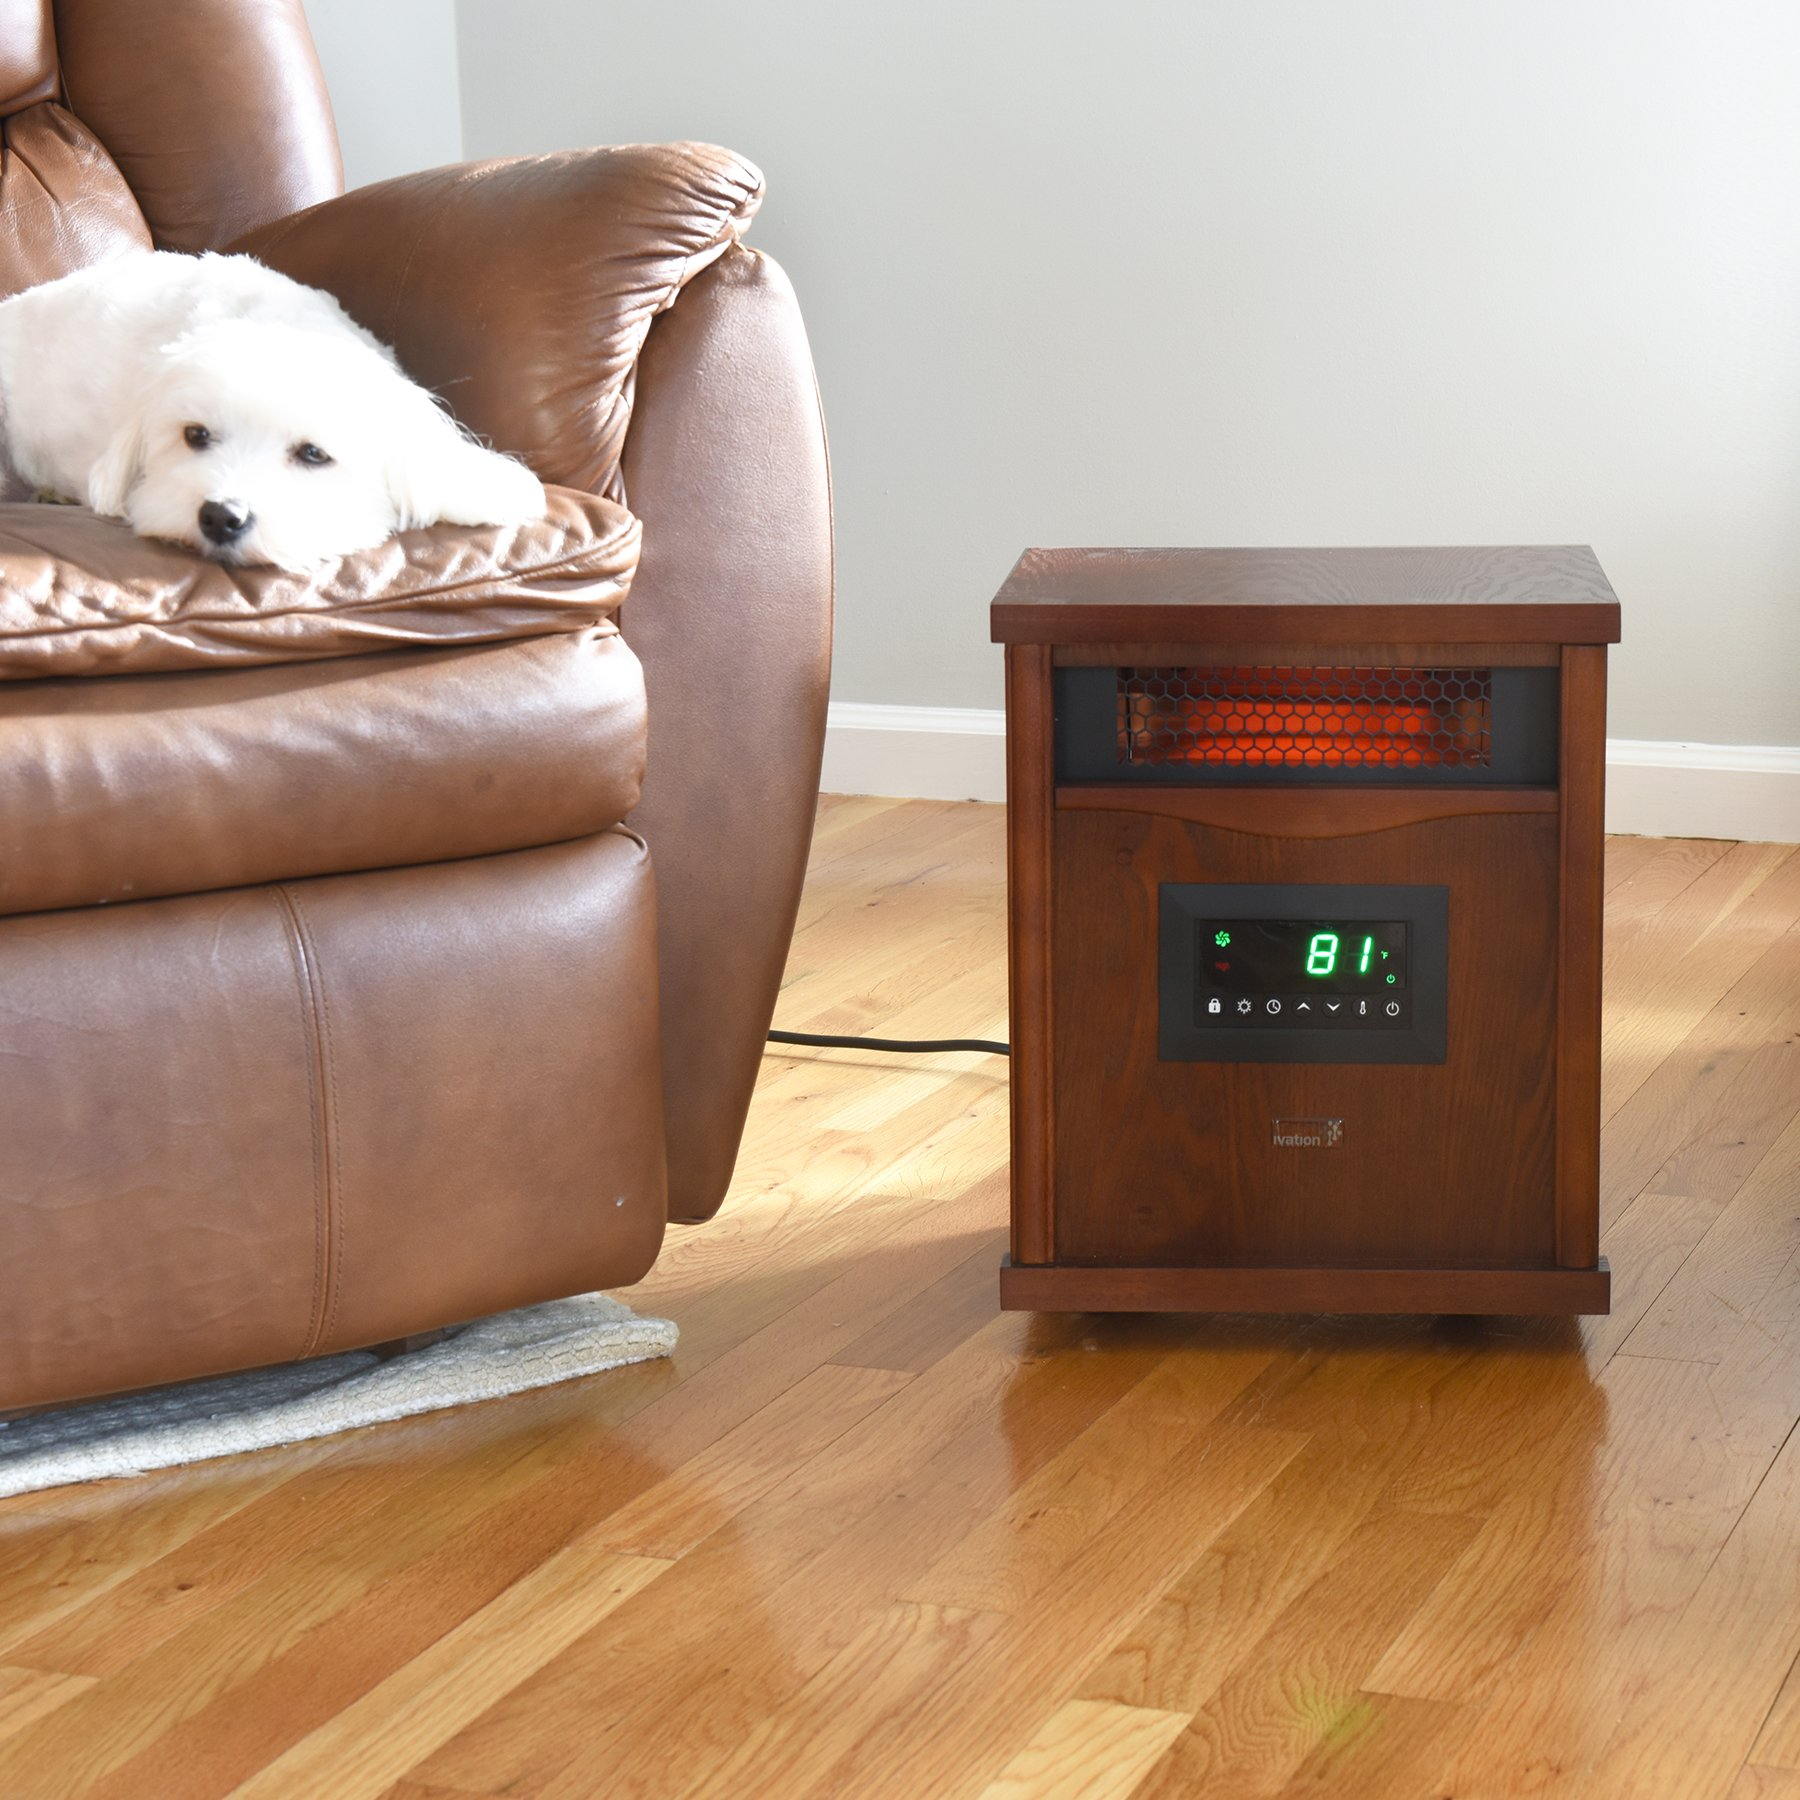 Ivation Portable Electric Space Heater, 1500-Watt 6-Element Infrared Quartz Mini Heater With Digital Thermostat, Remote Control, Timer & Filter by Ivation (Image #7)